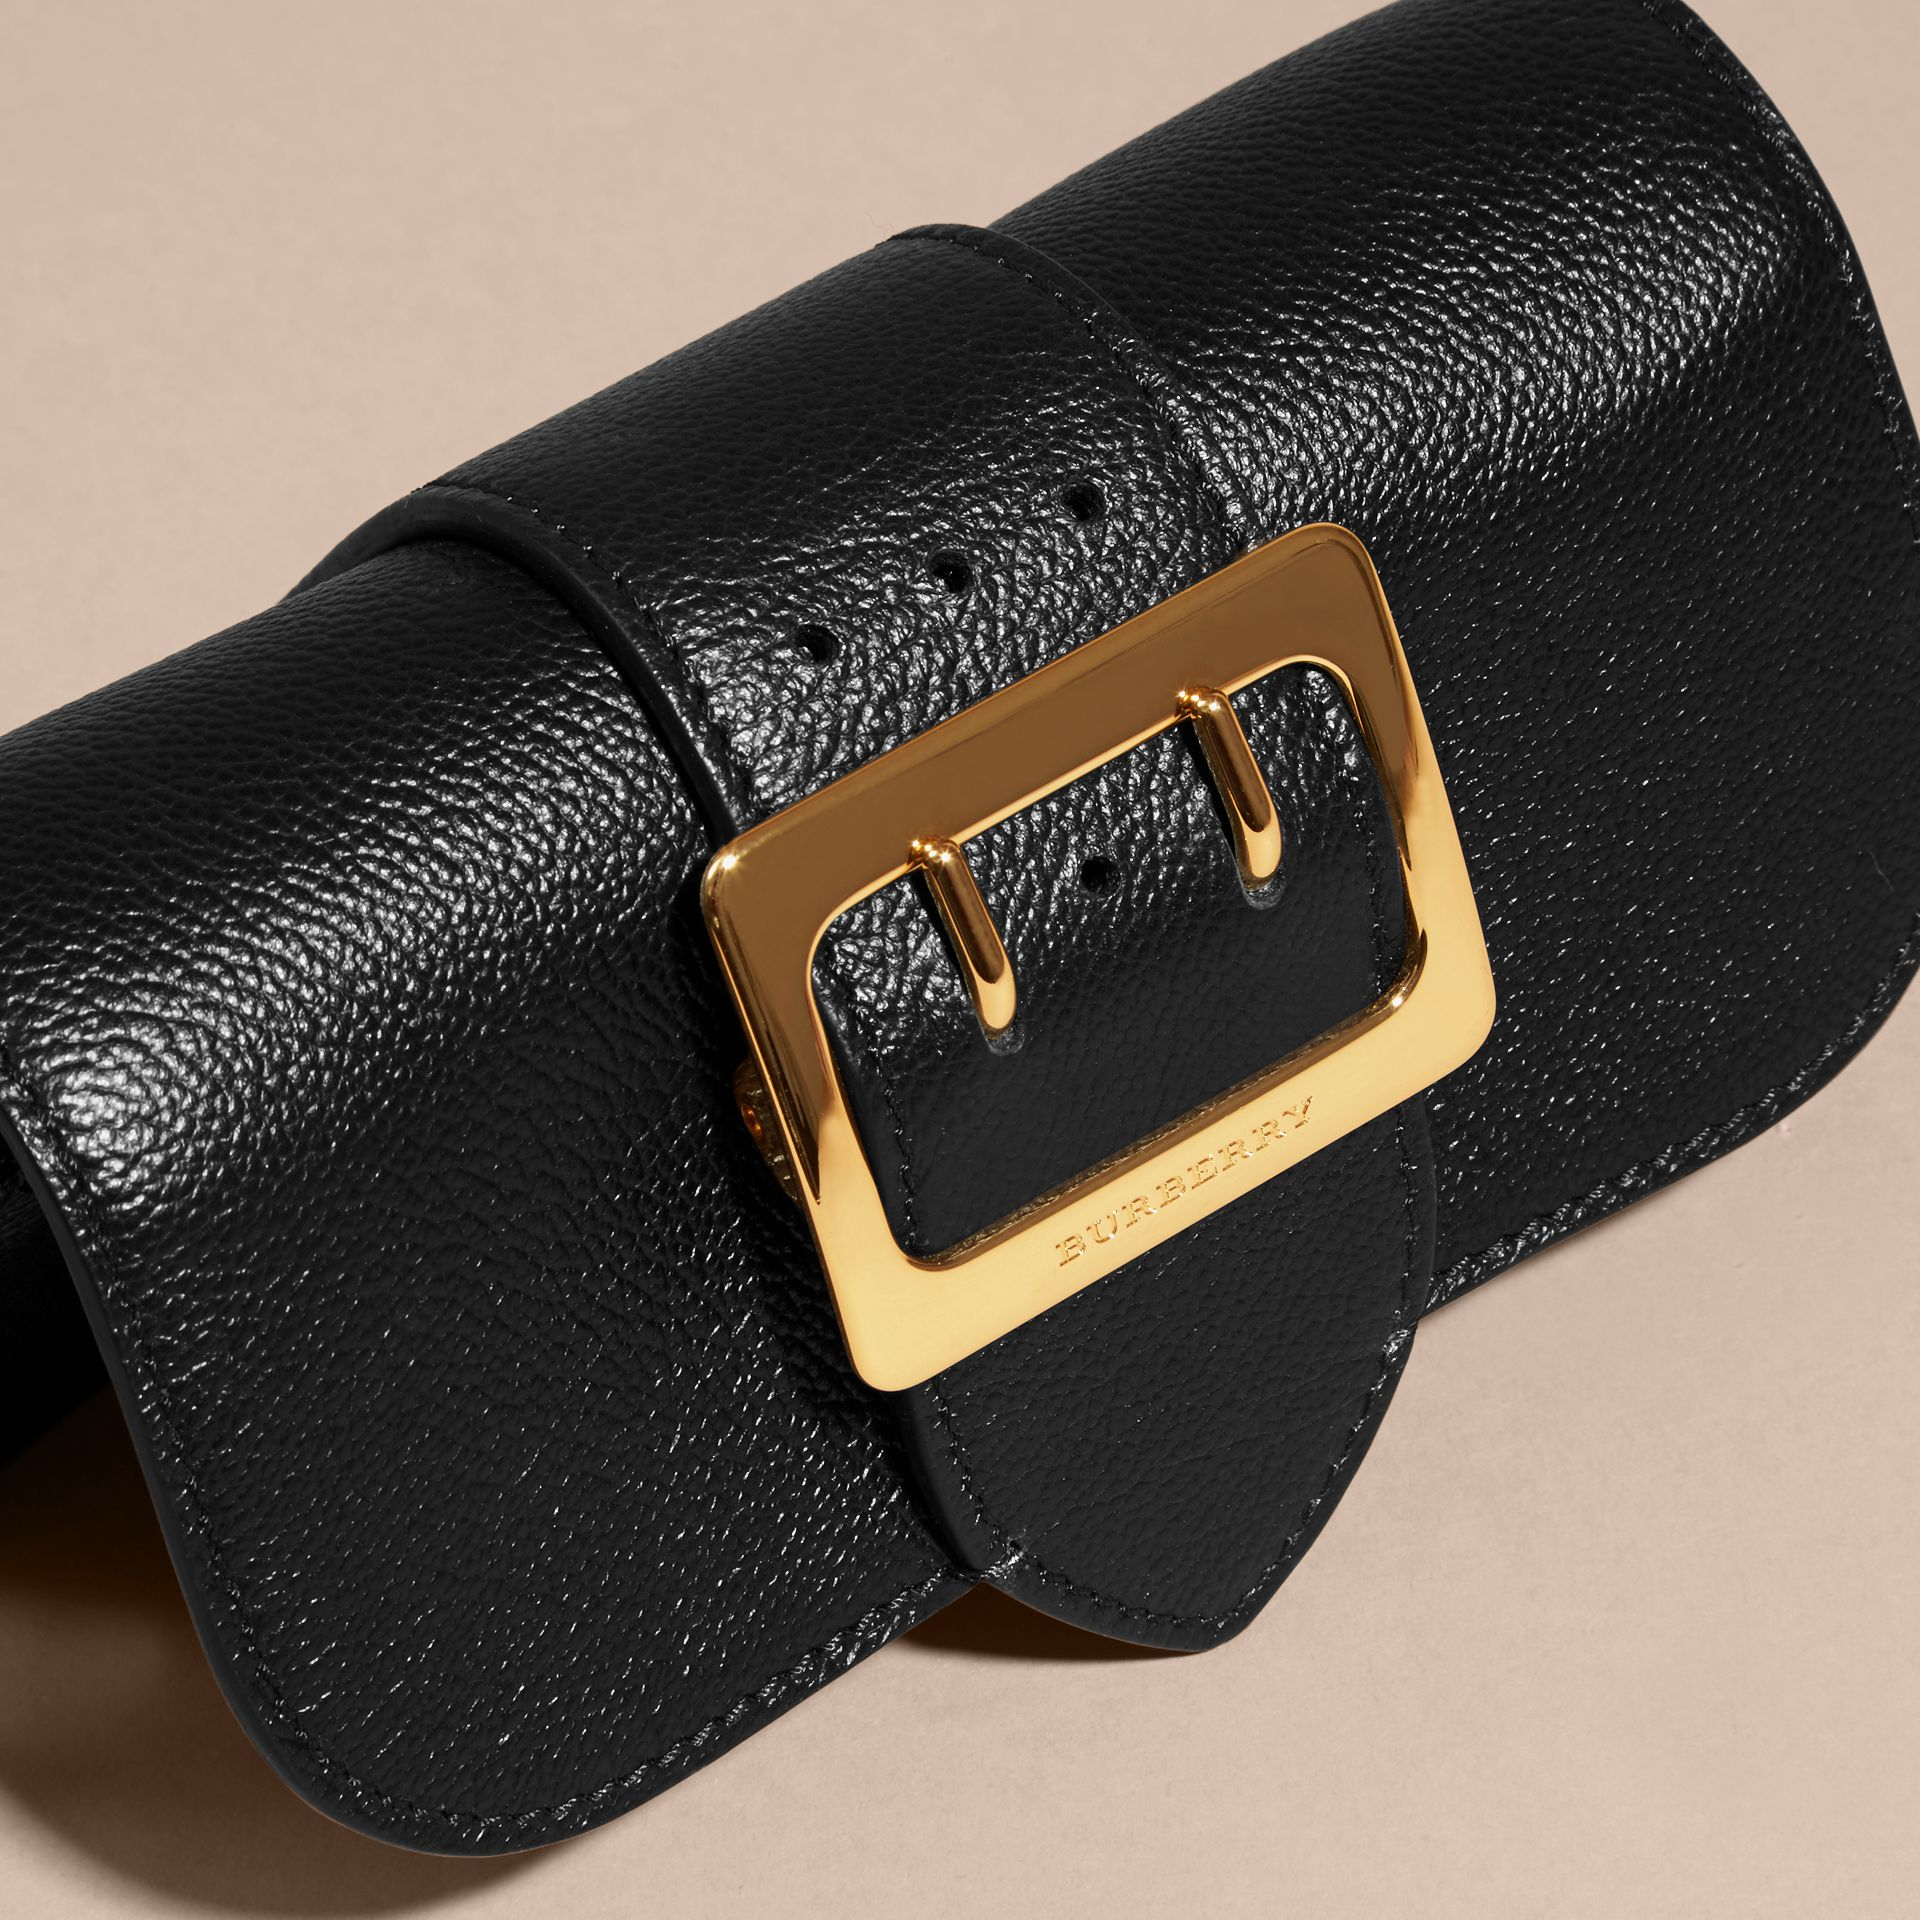 Black The Mini Buckle Bag in Grainy Leather Black - gallery image 5